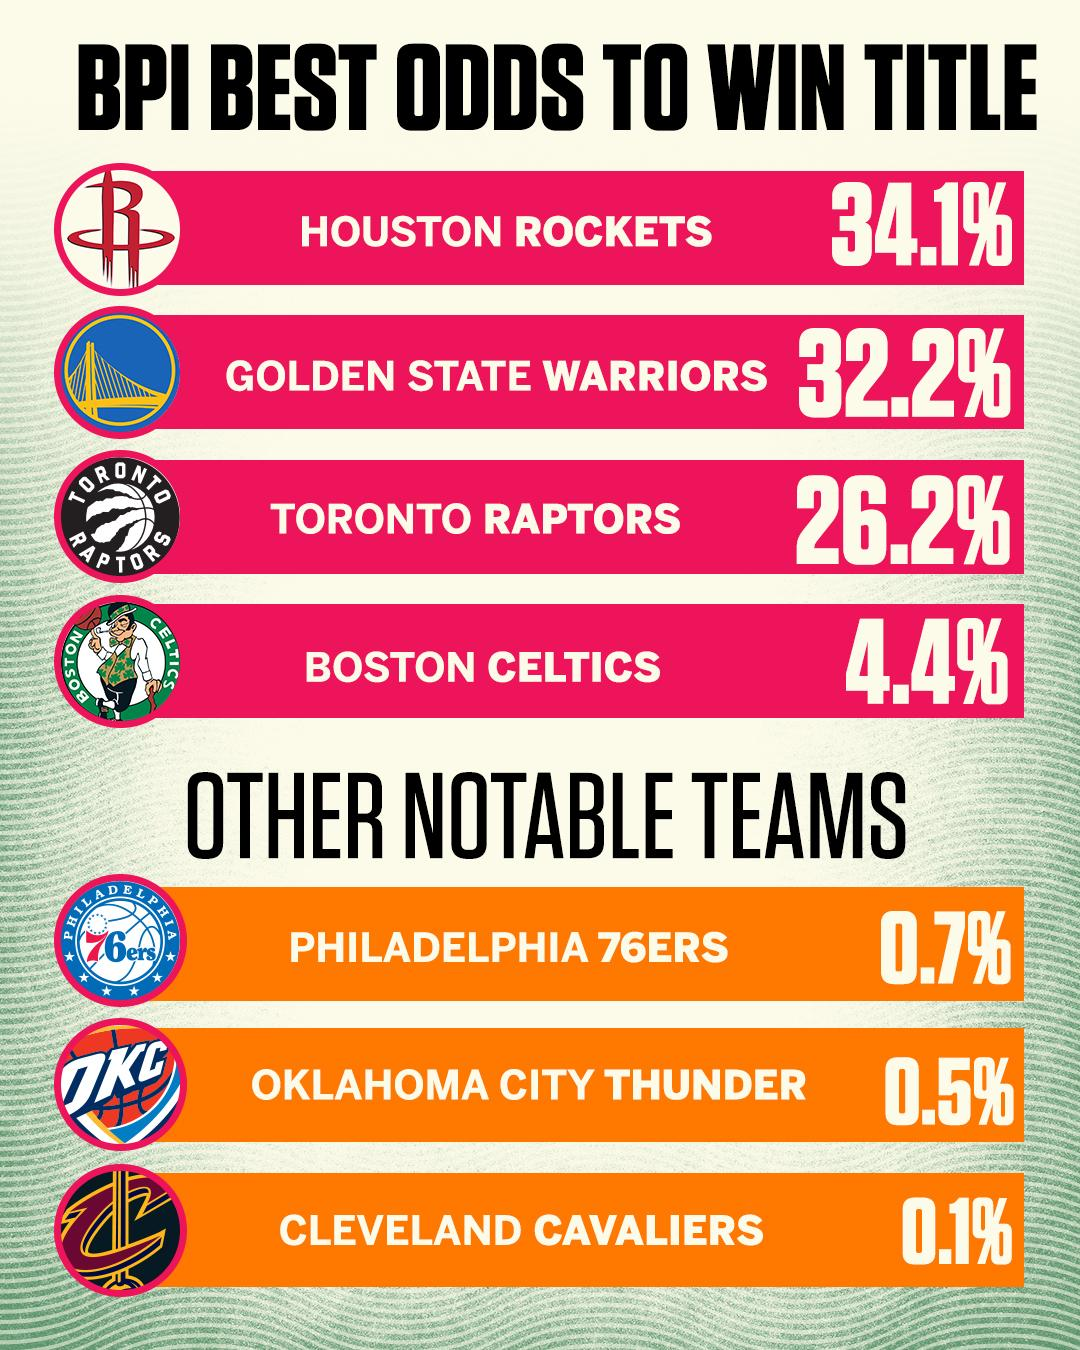 Latest calculations have the Rockets with the best chance to win the NBA Finals. https://t.co/RluunCoPMS